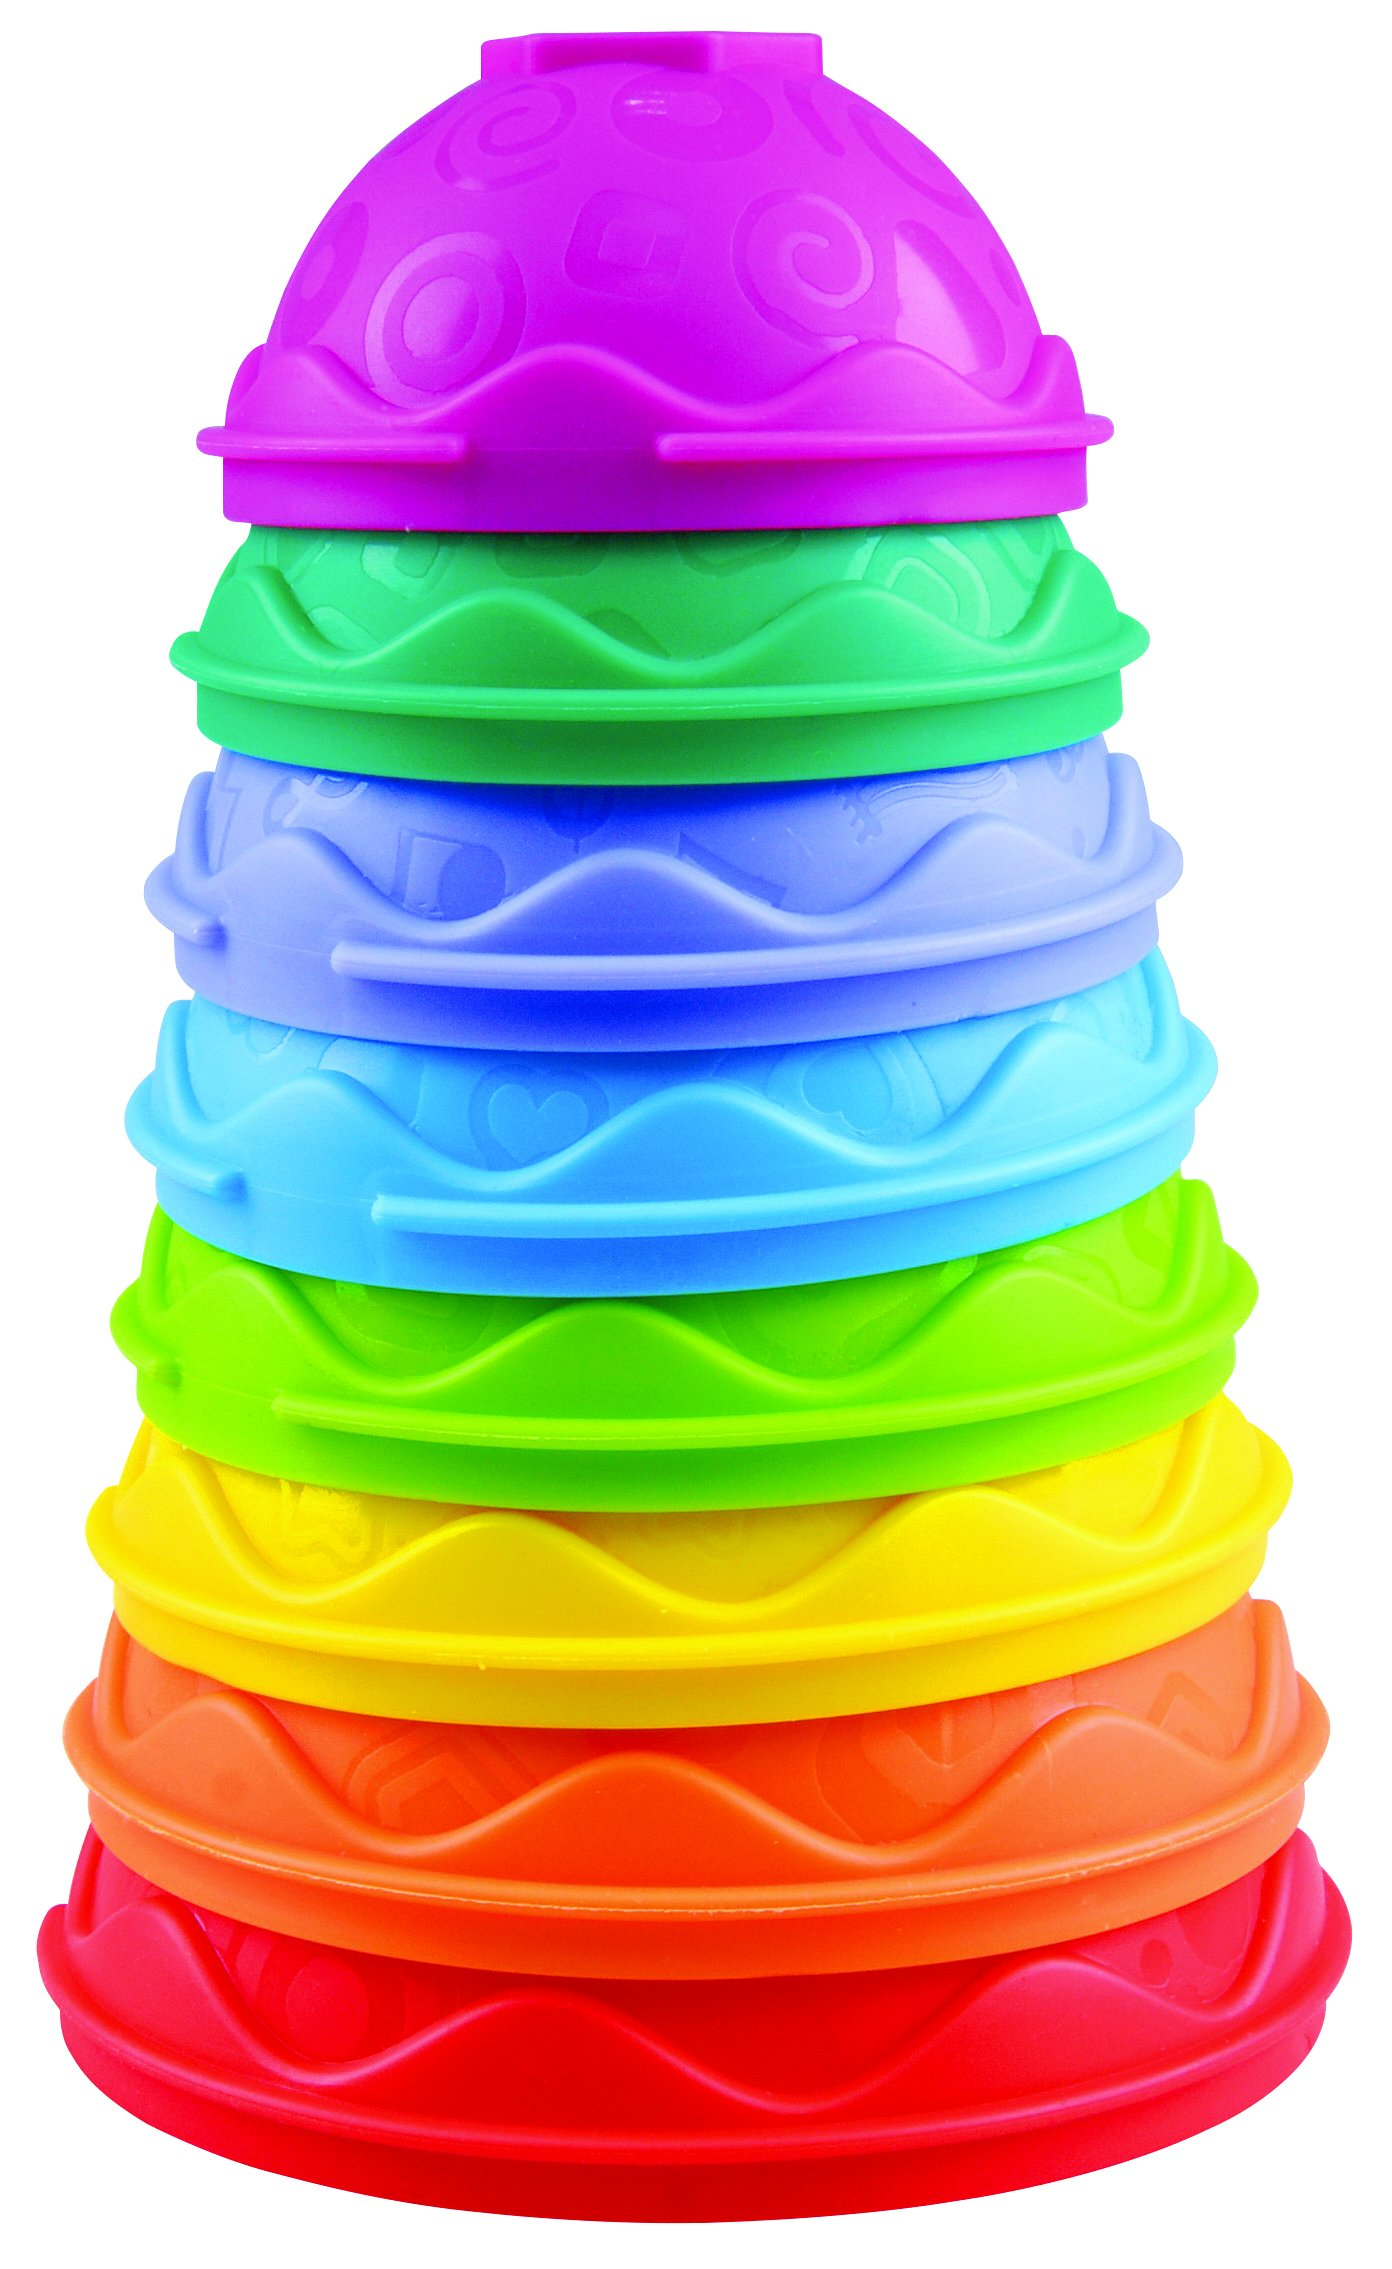 KidSource Stack and Build Cups Developmental Toy for Babies, Multi